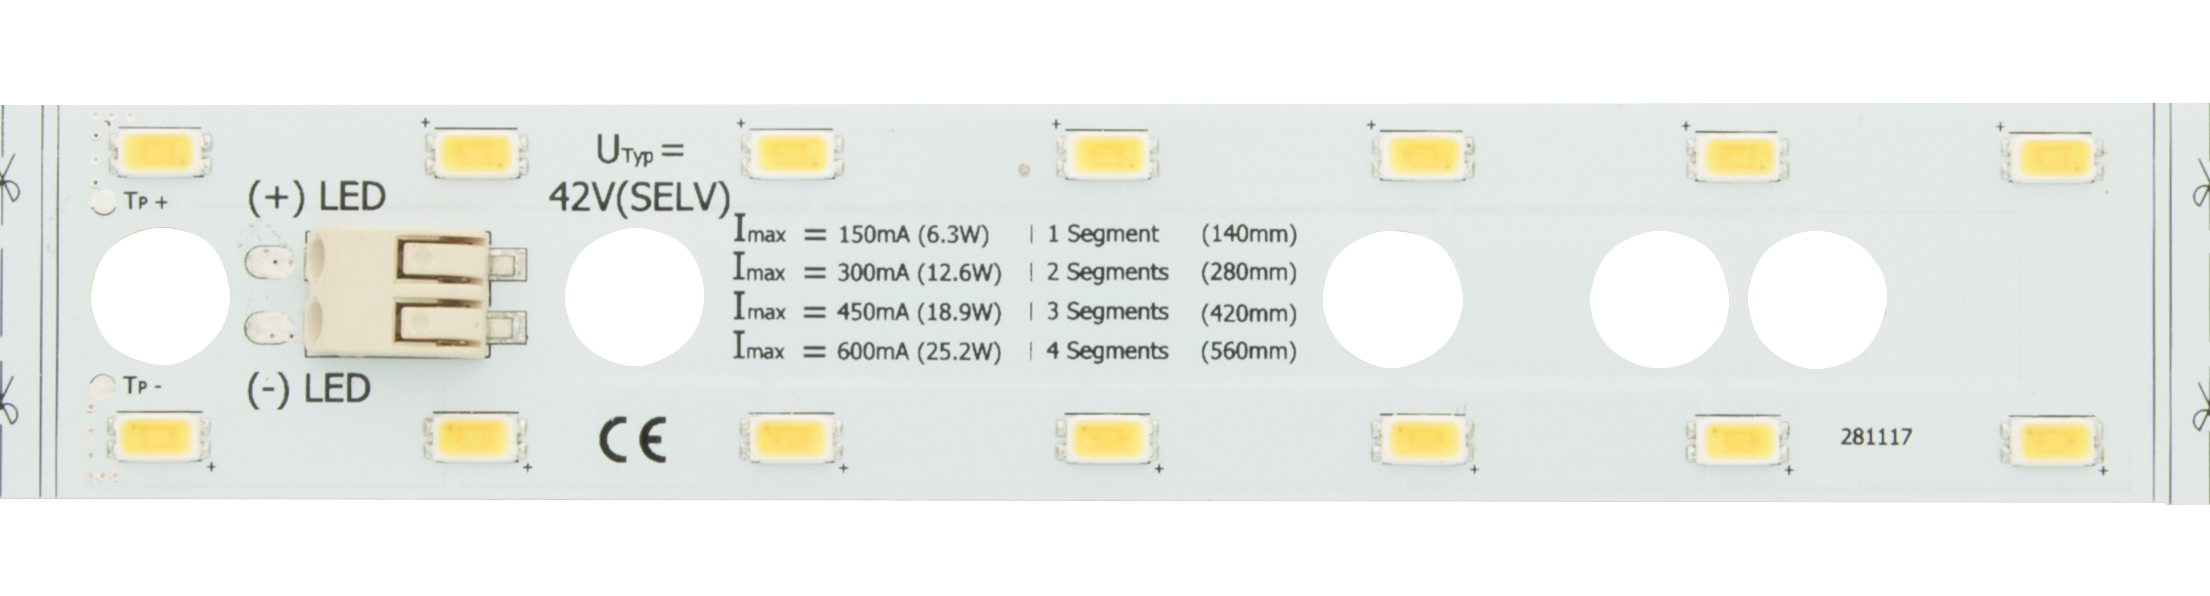 1 Stk LED Platinen Modul 25 UWW (Ultra Warm Weiss)-IP20,CRI/RA 90+ LIPM002927